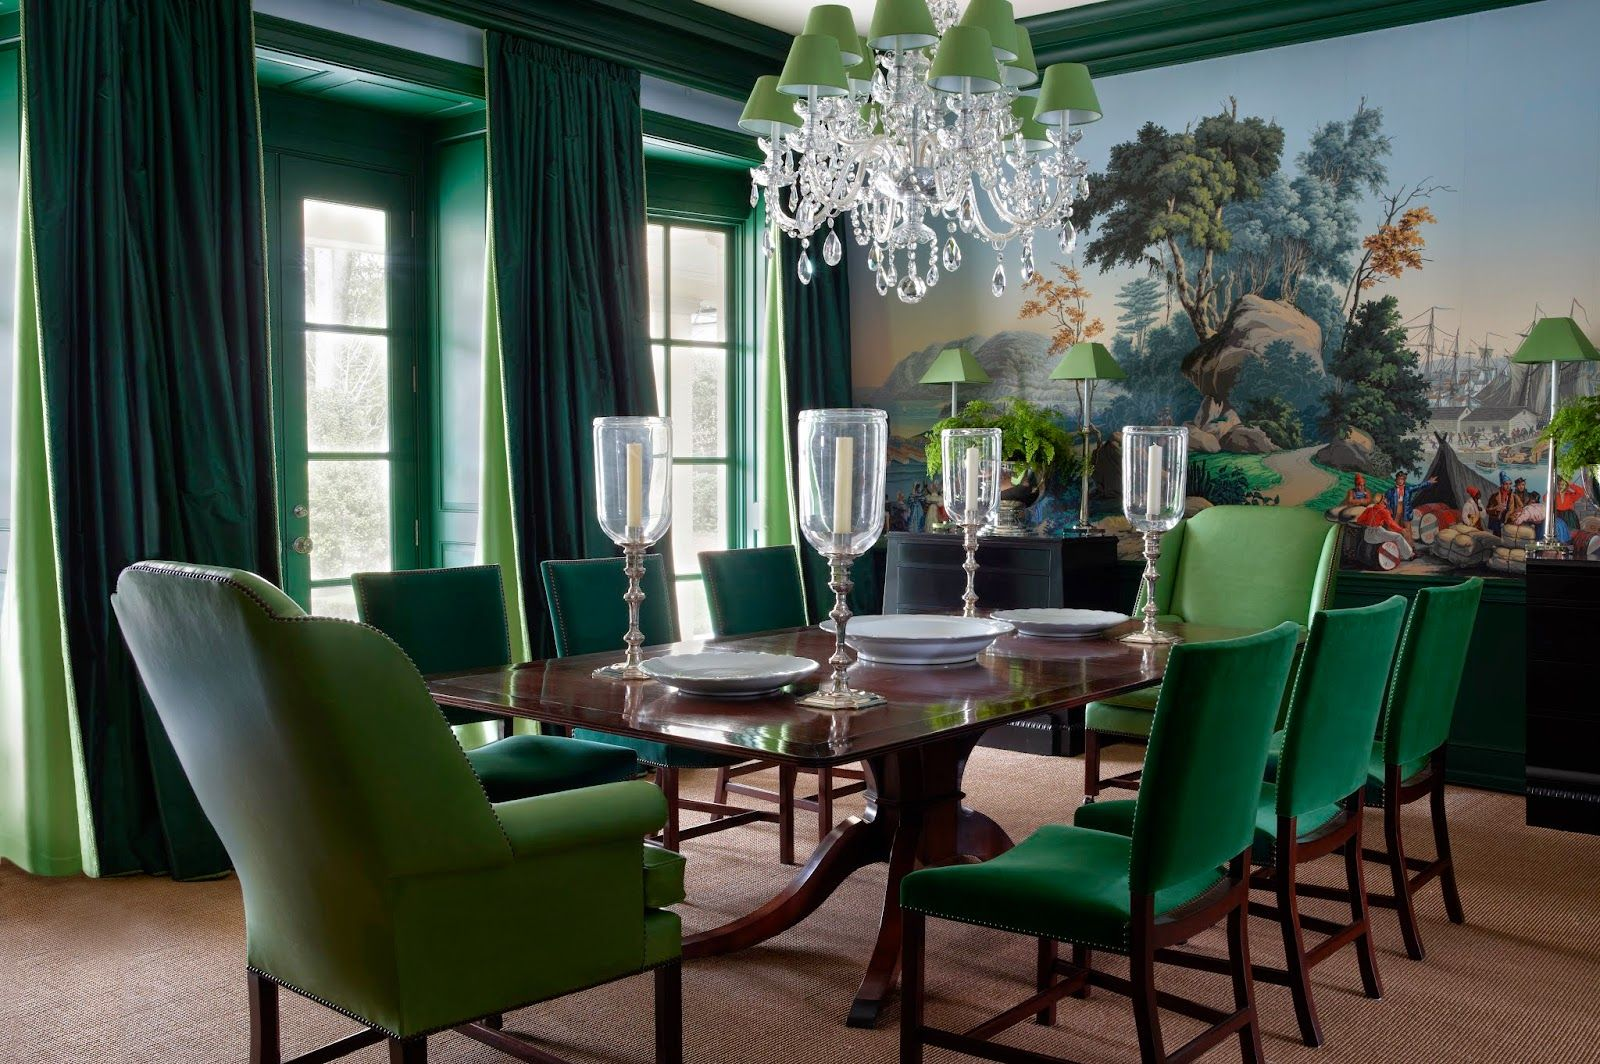 Beautiful Muraled Wall Tones Of Green Chandelier With